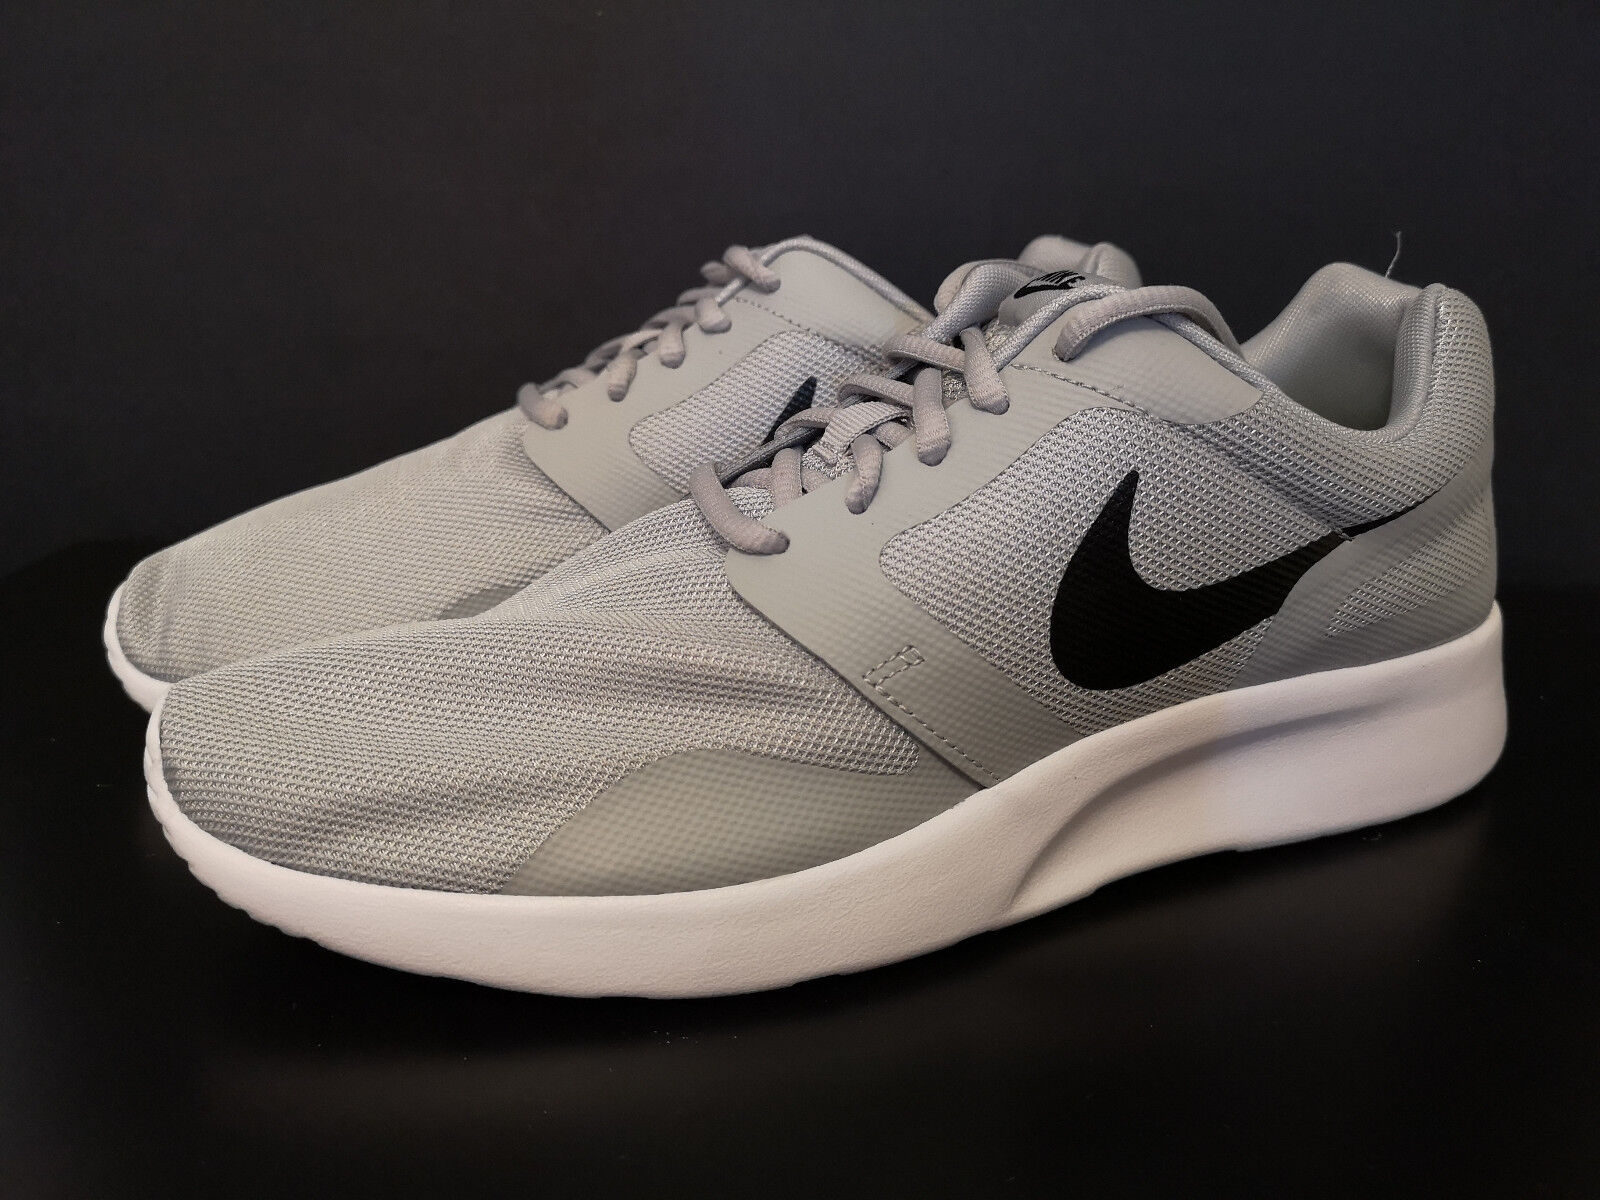 7decbb33918a DS NIKE NIKE NIKE KAISHI NS GREY 10 8bf154 - collectibles ...